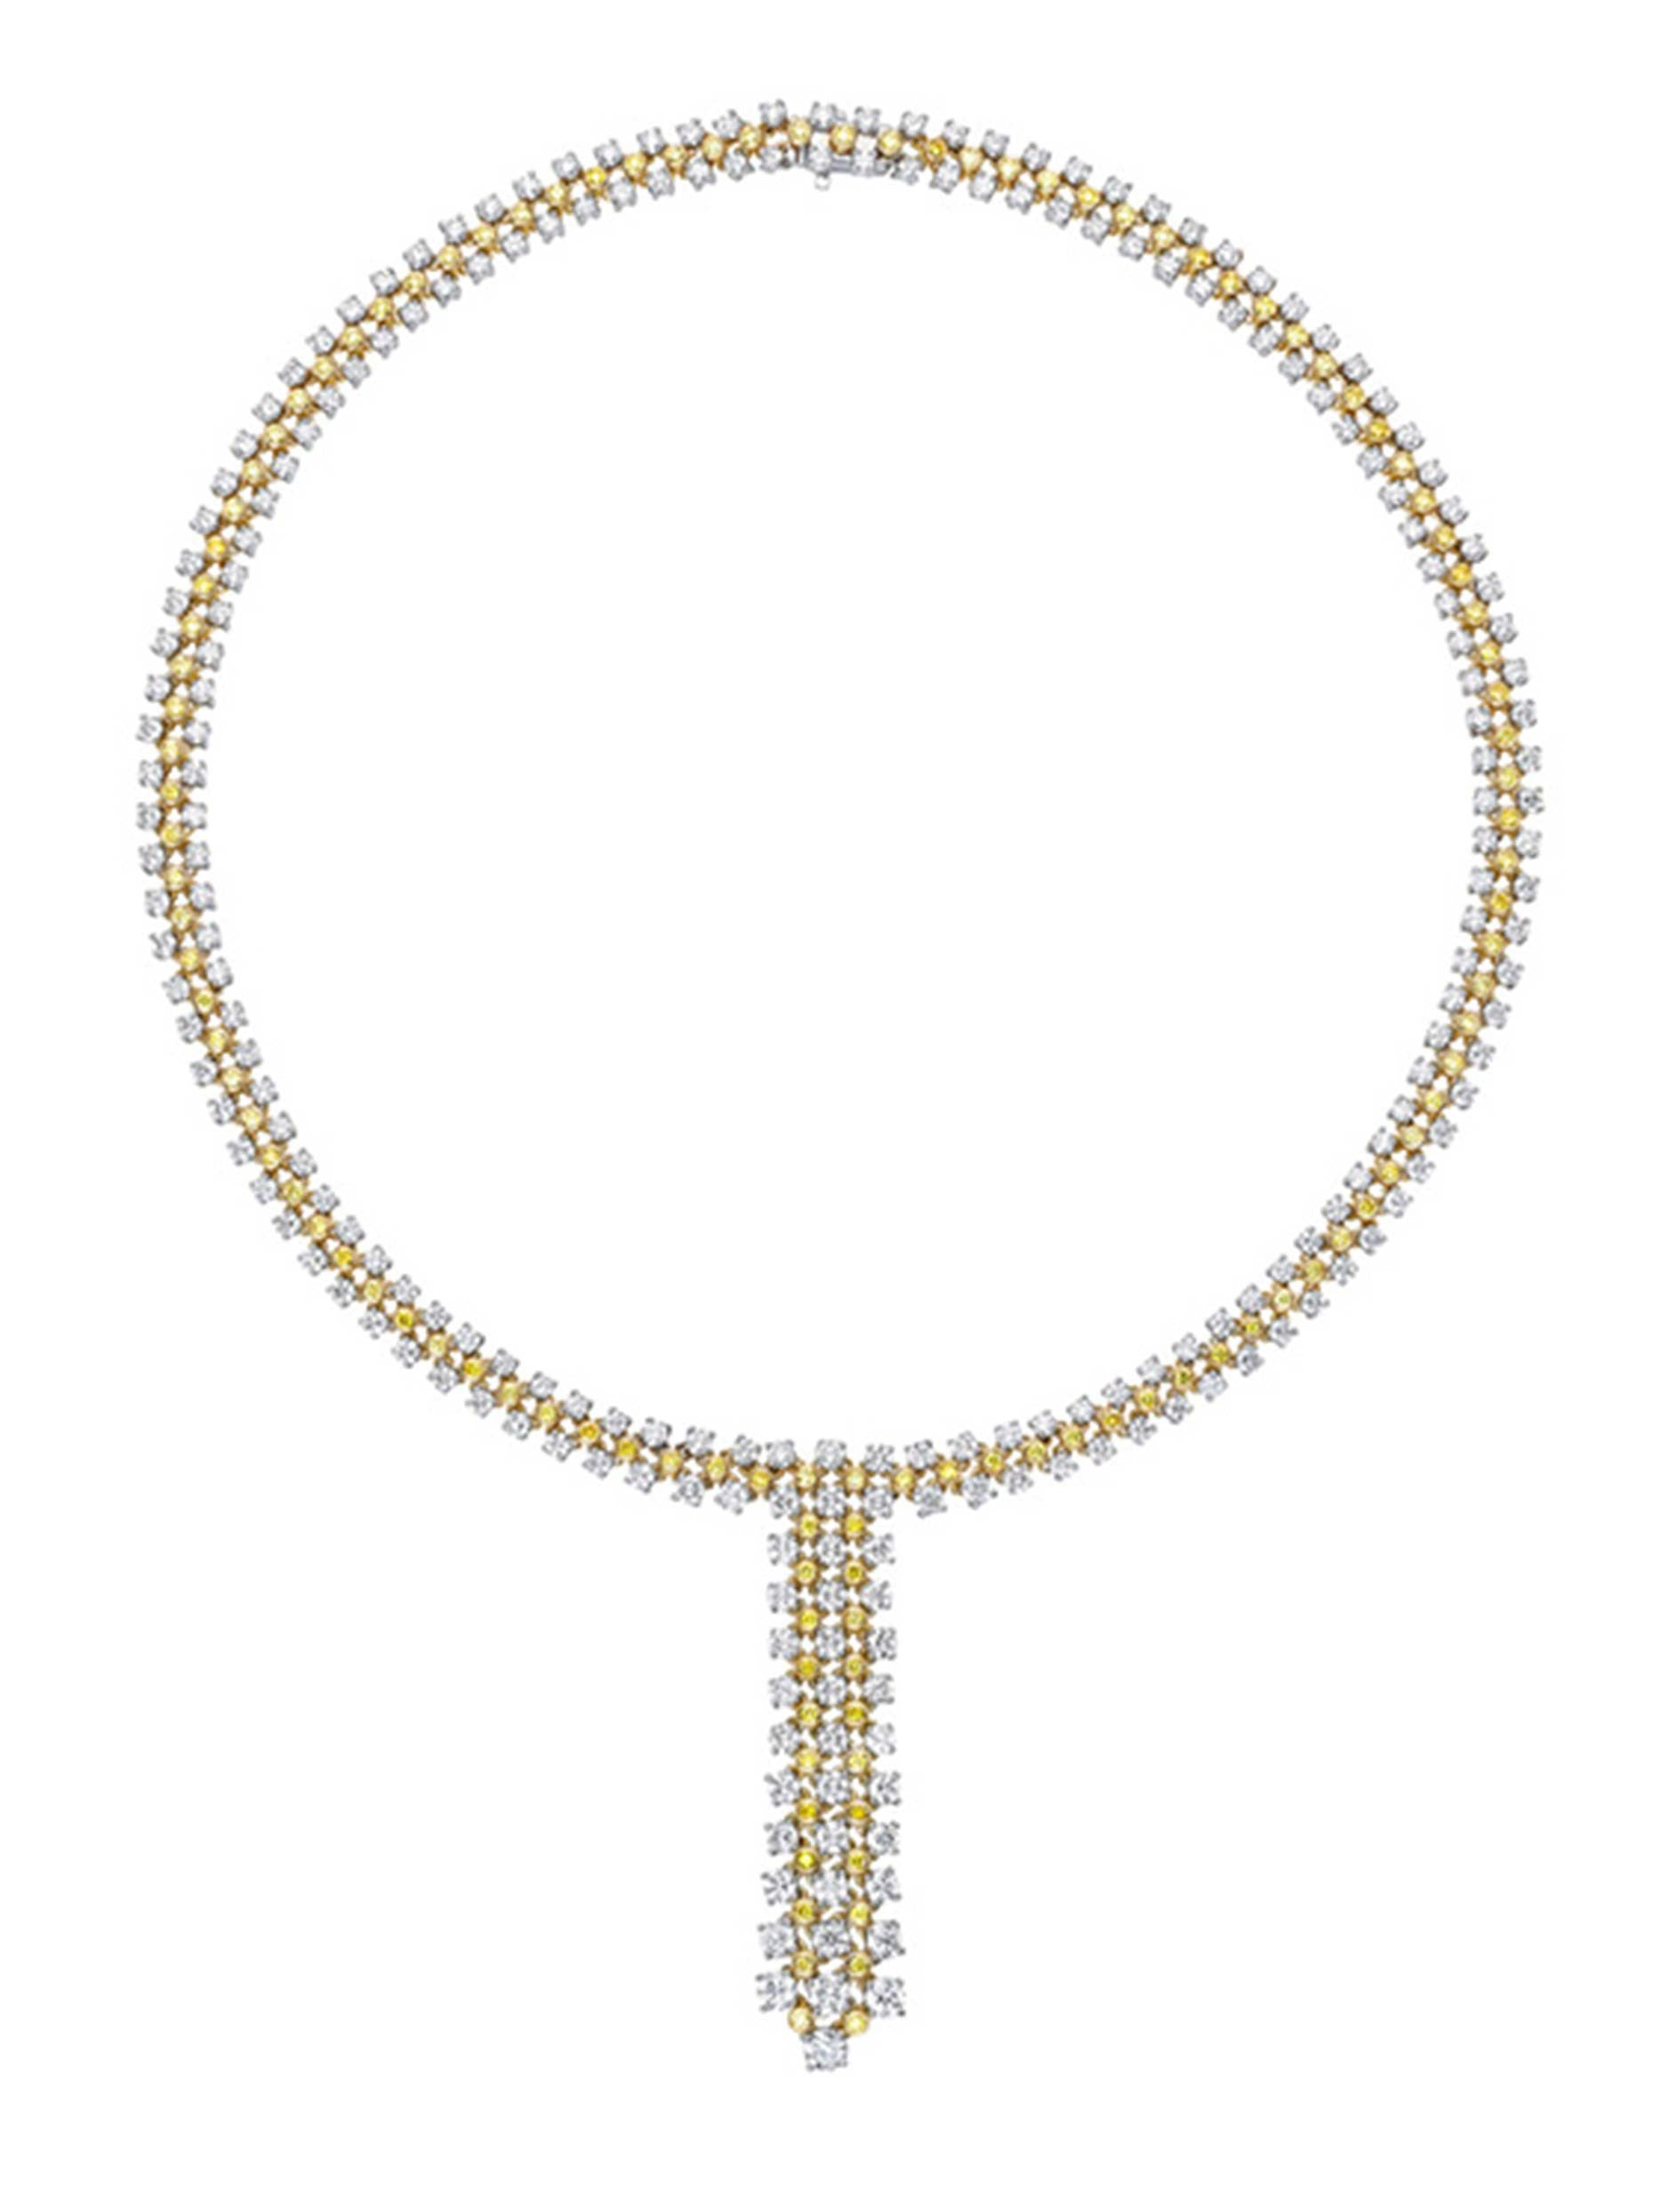 Jubilee White and Yellow dDamond Y Necklace